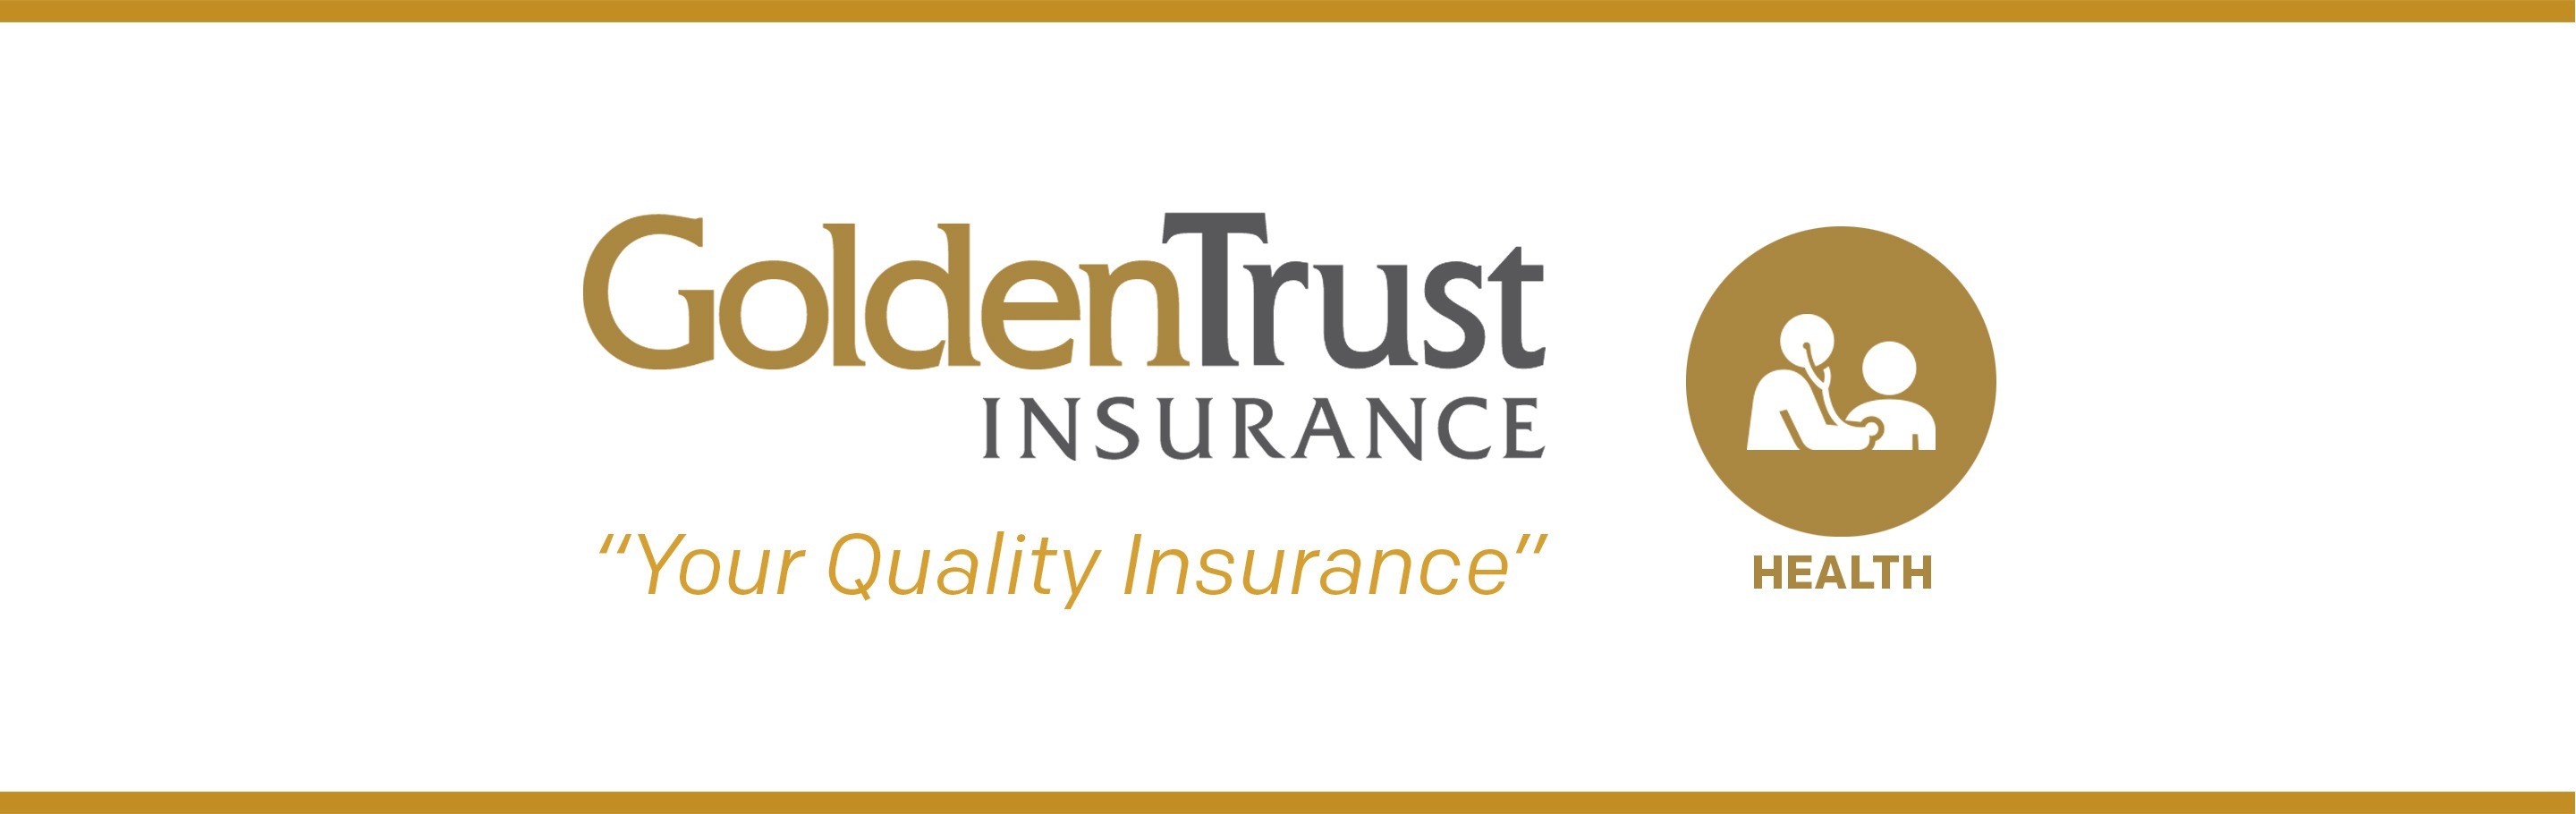 goldentrust your quality health insurance